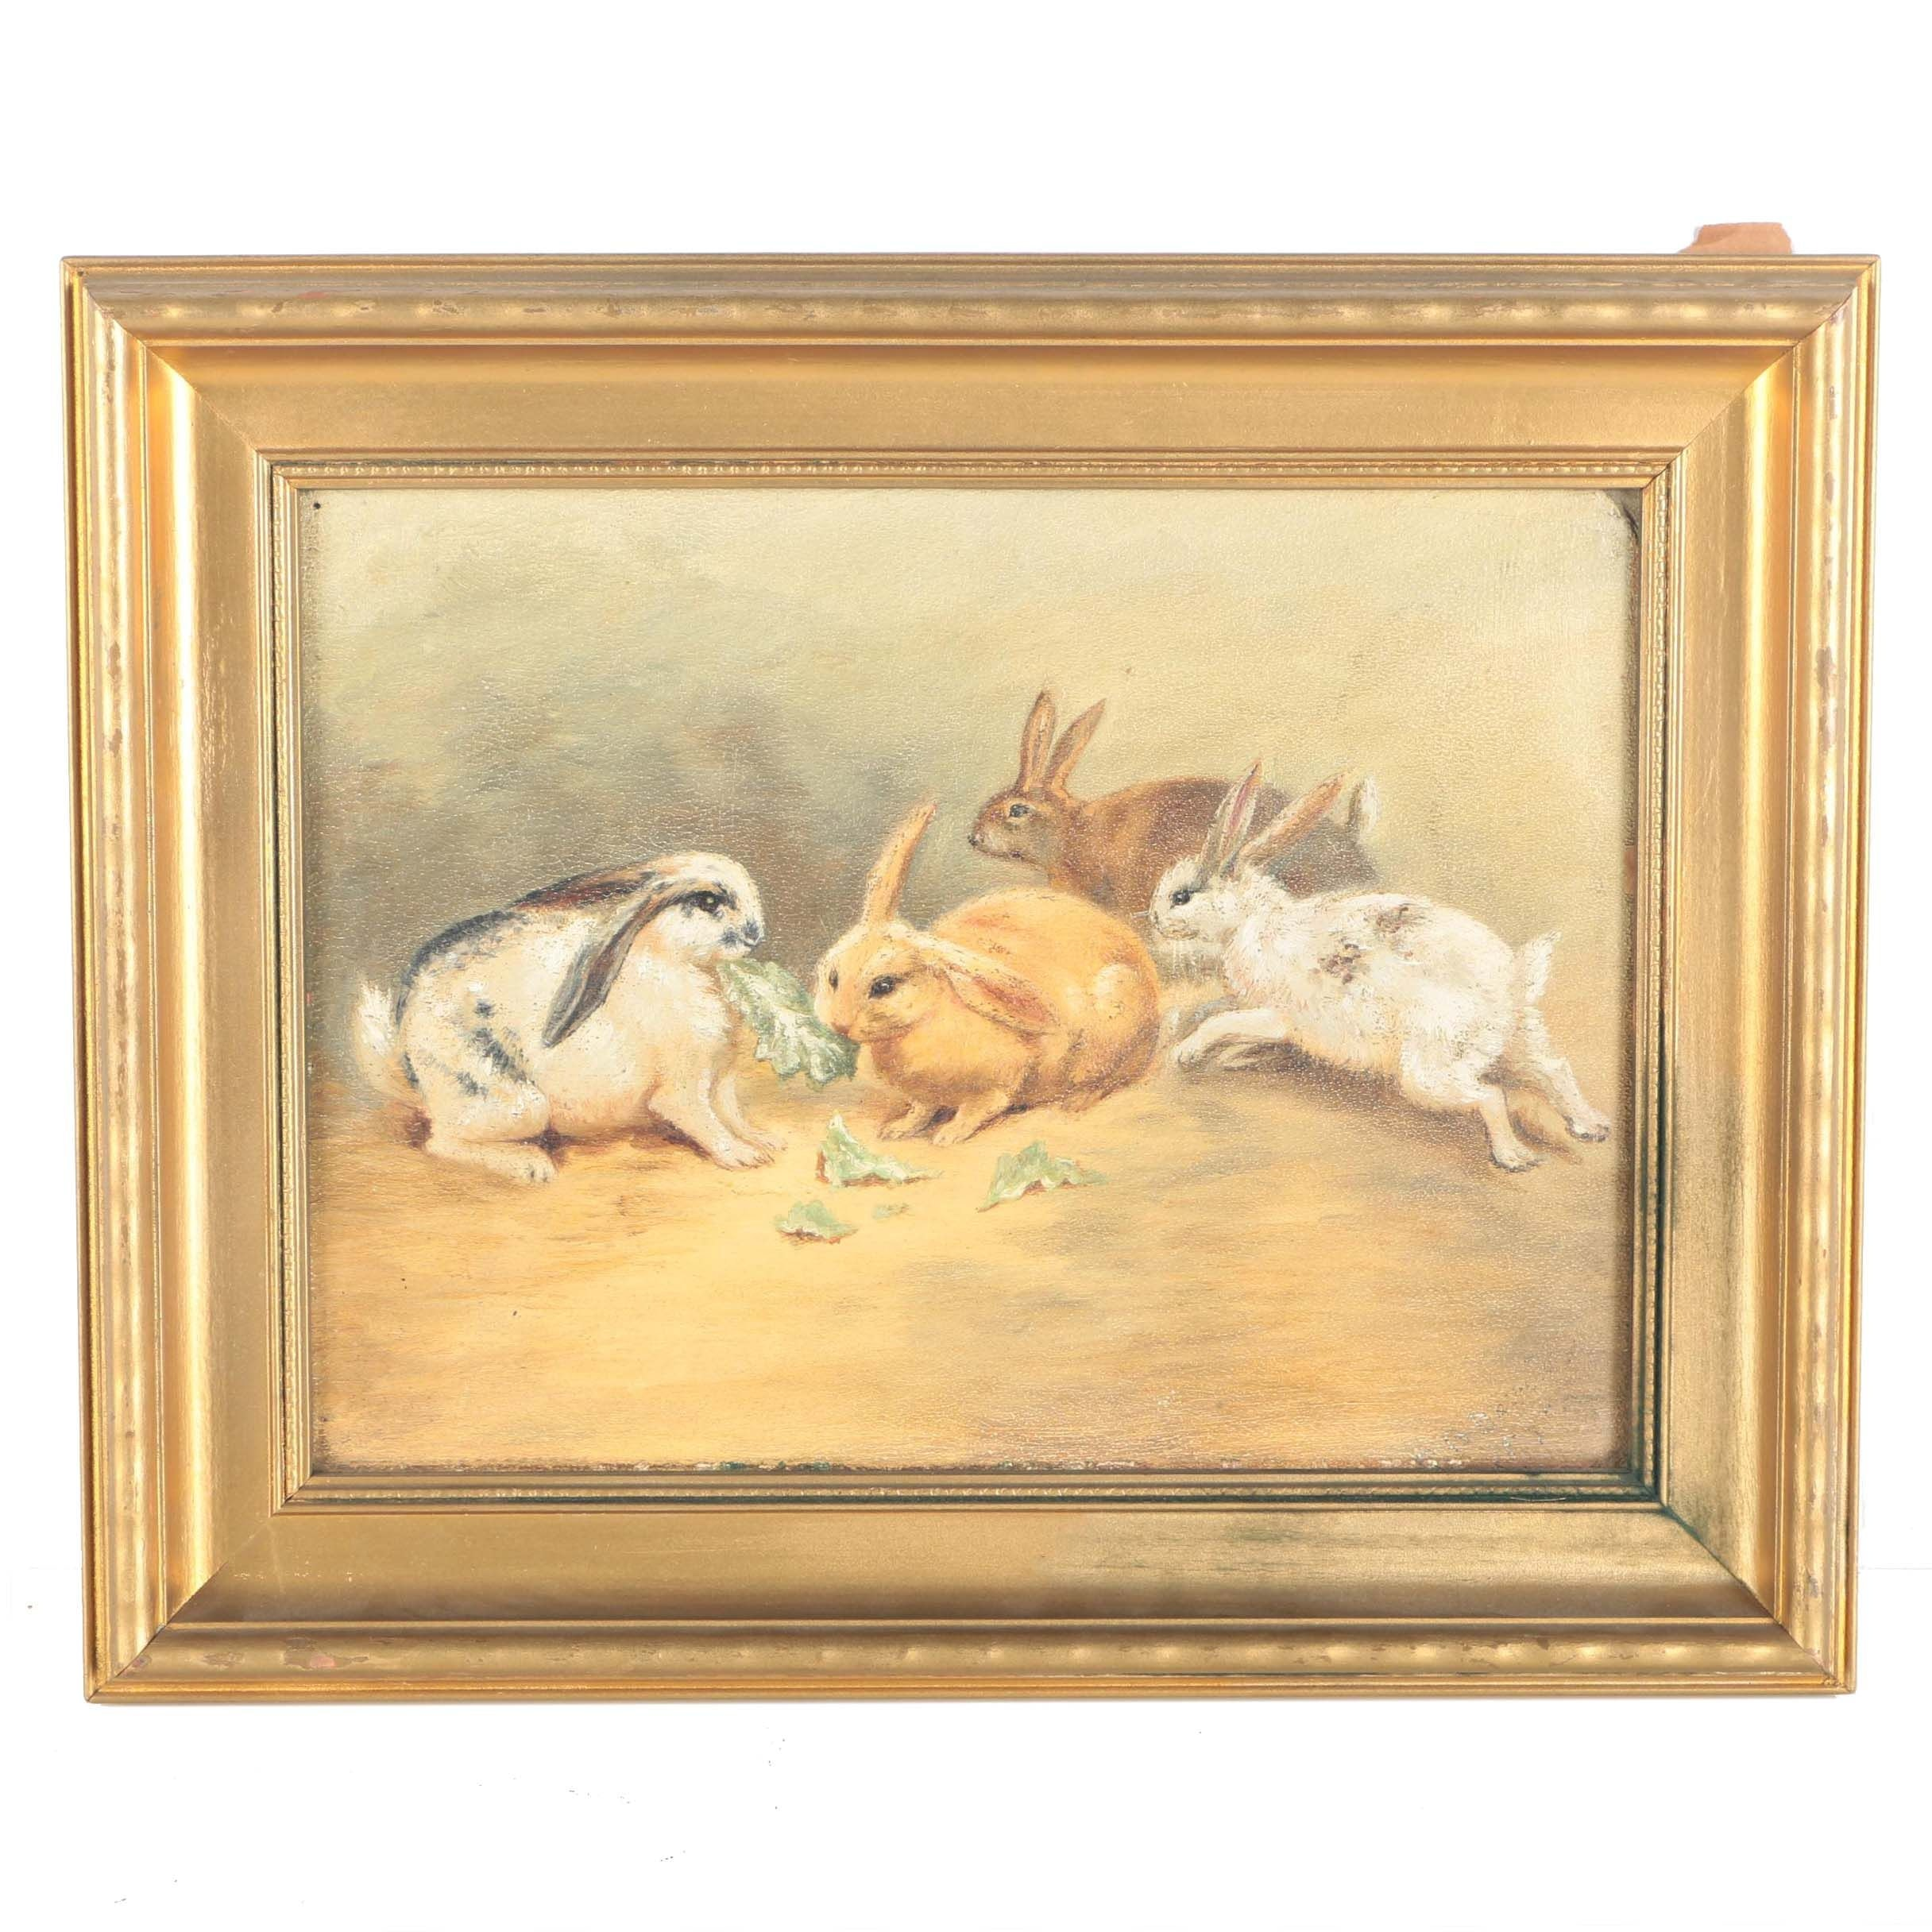 Oil Painting on Board Four Rabbits